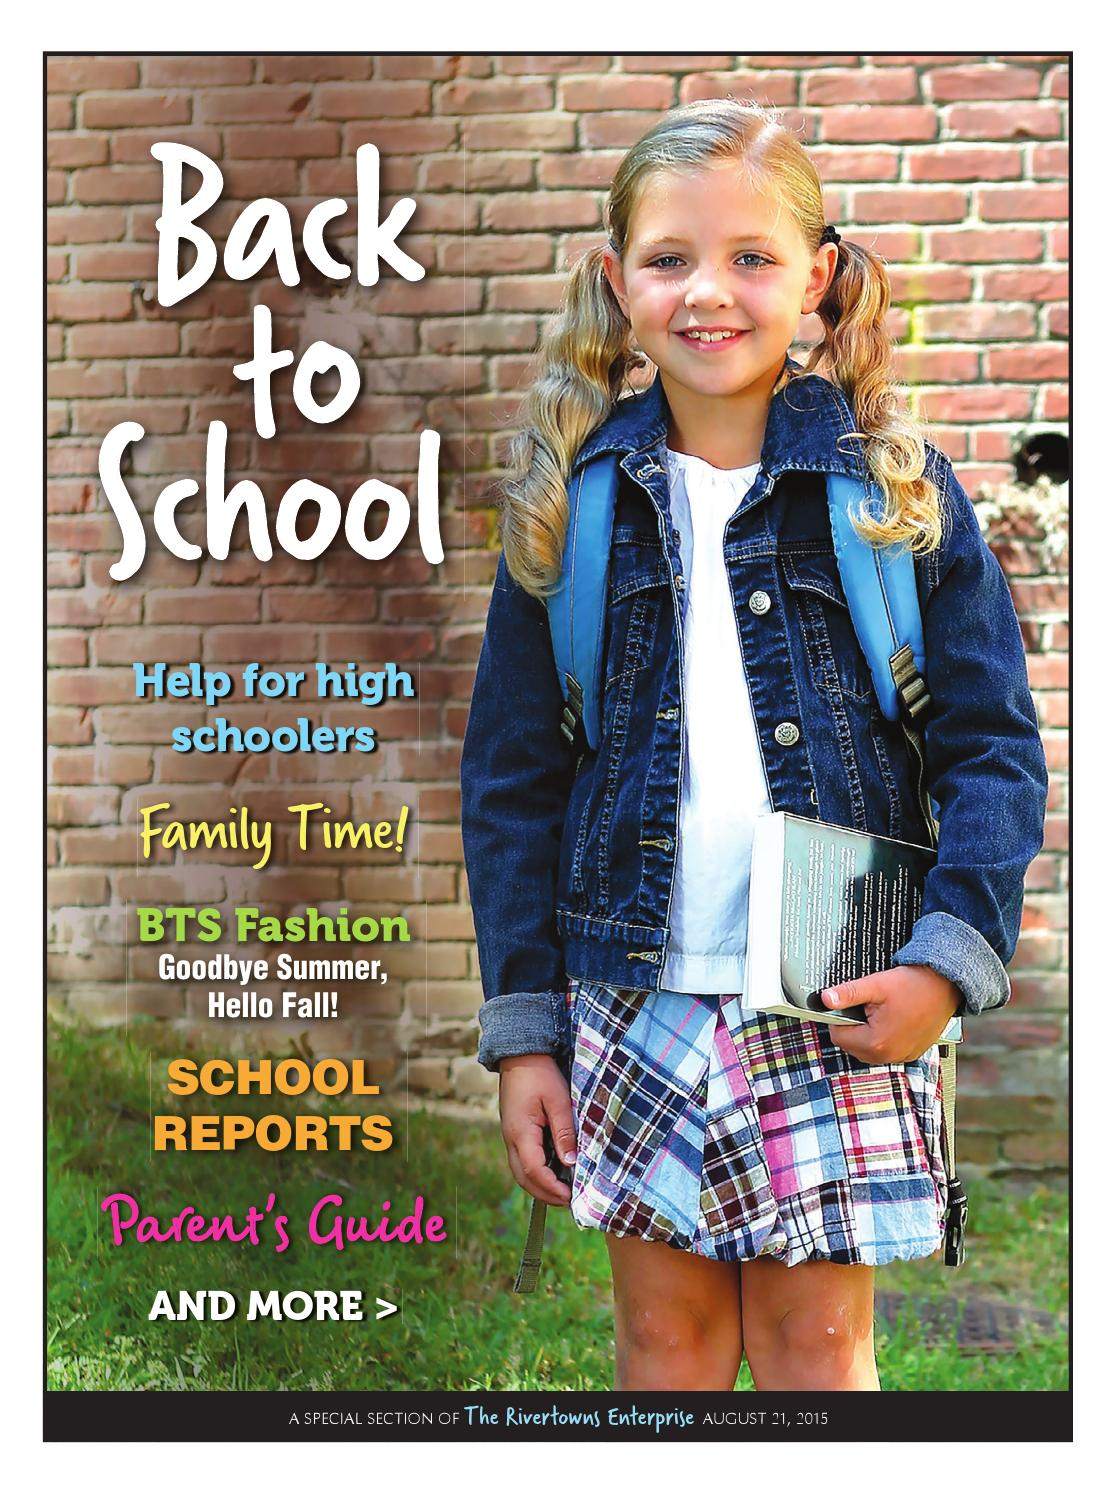 Rivertowns Enterprise - BACK TO SCHOOL 2015 by The Rivertowns Enterprise -  issuu